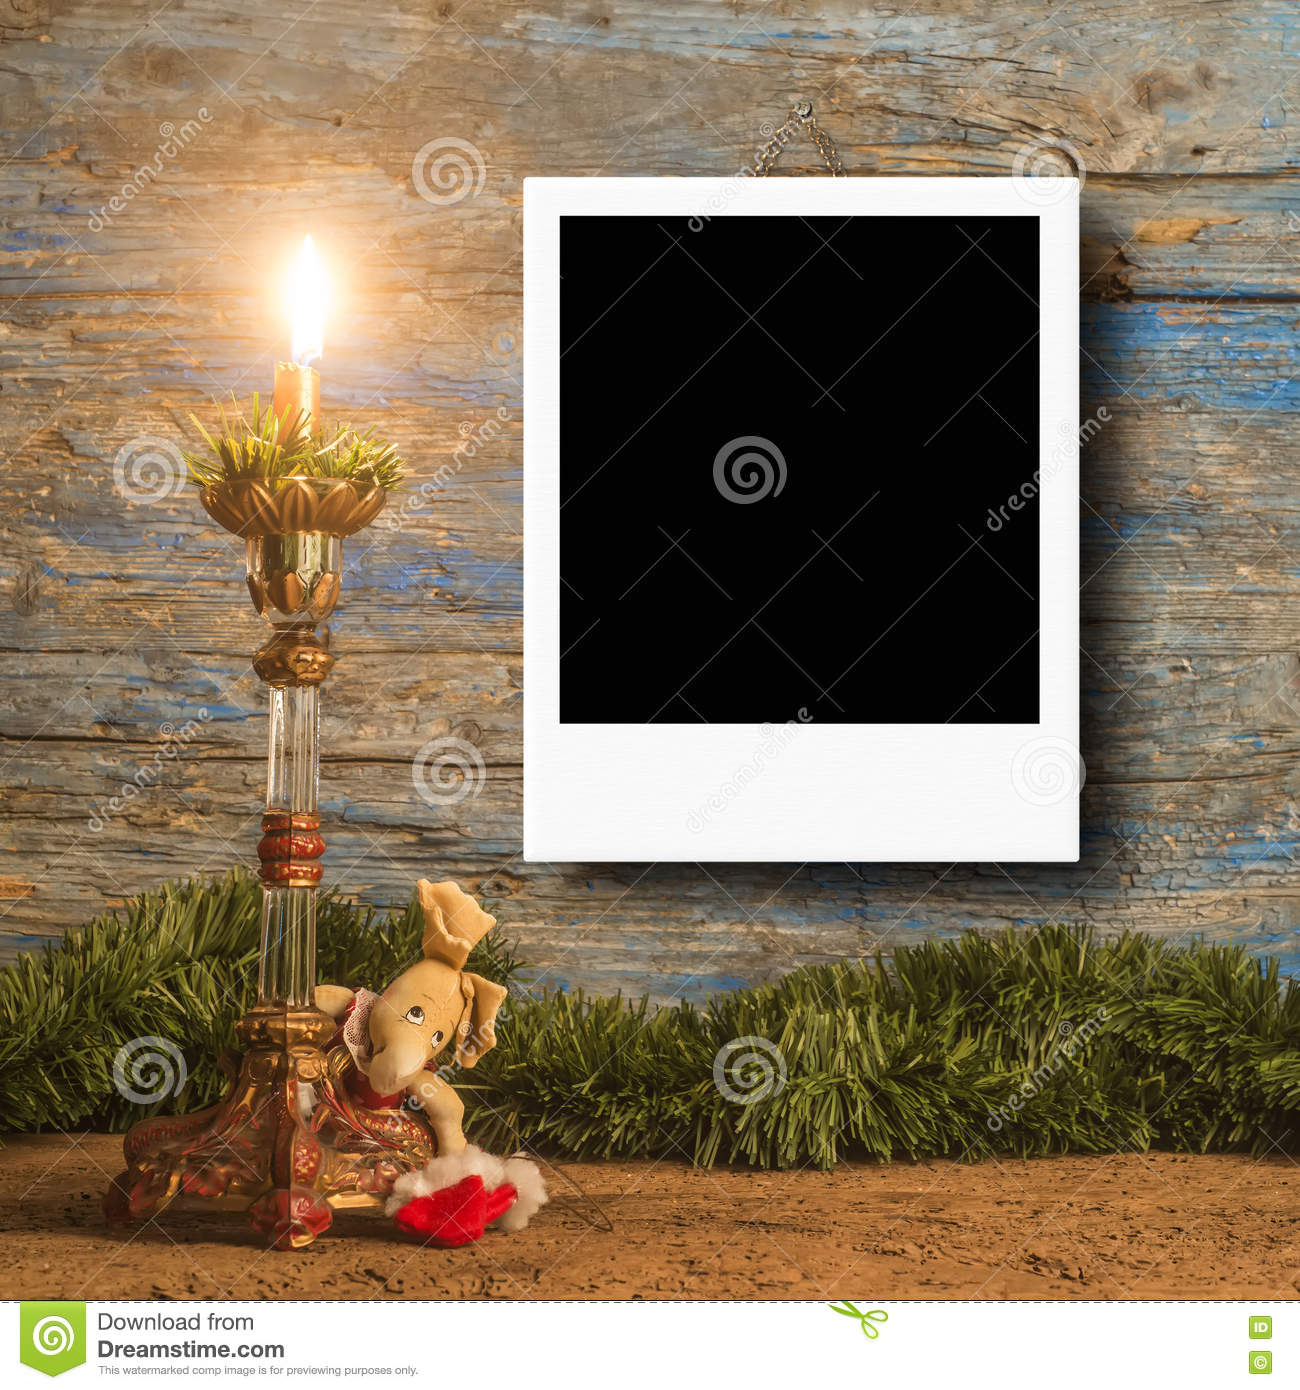 Christmas Photo Frame Cards For One Photo Stock Photo - Image of ...